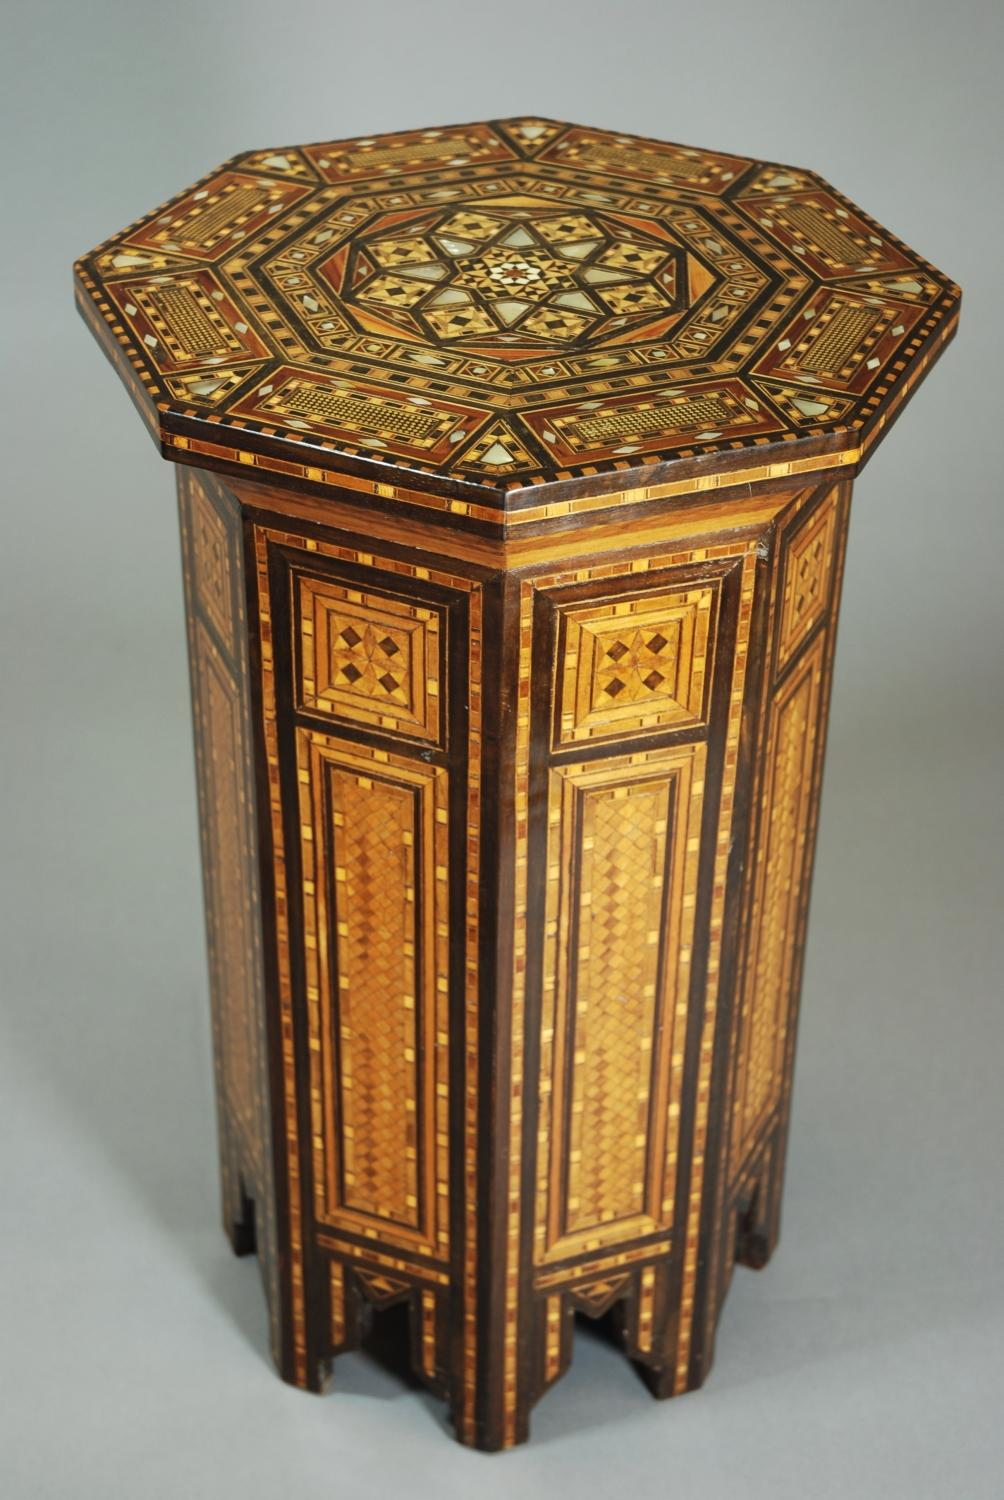 Syrian octagonal inlaid occasional table